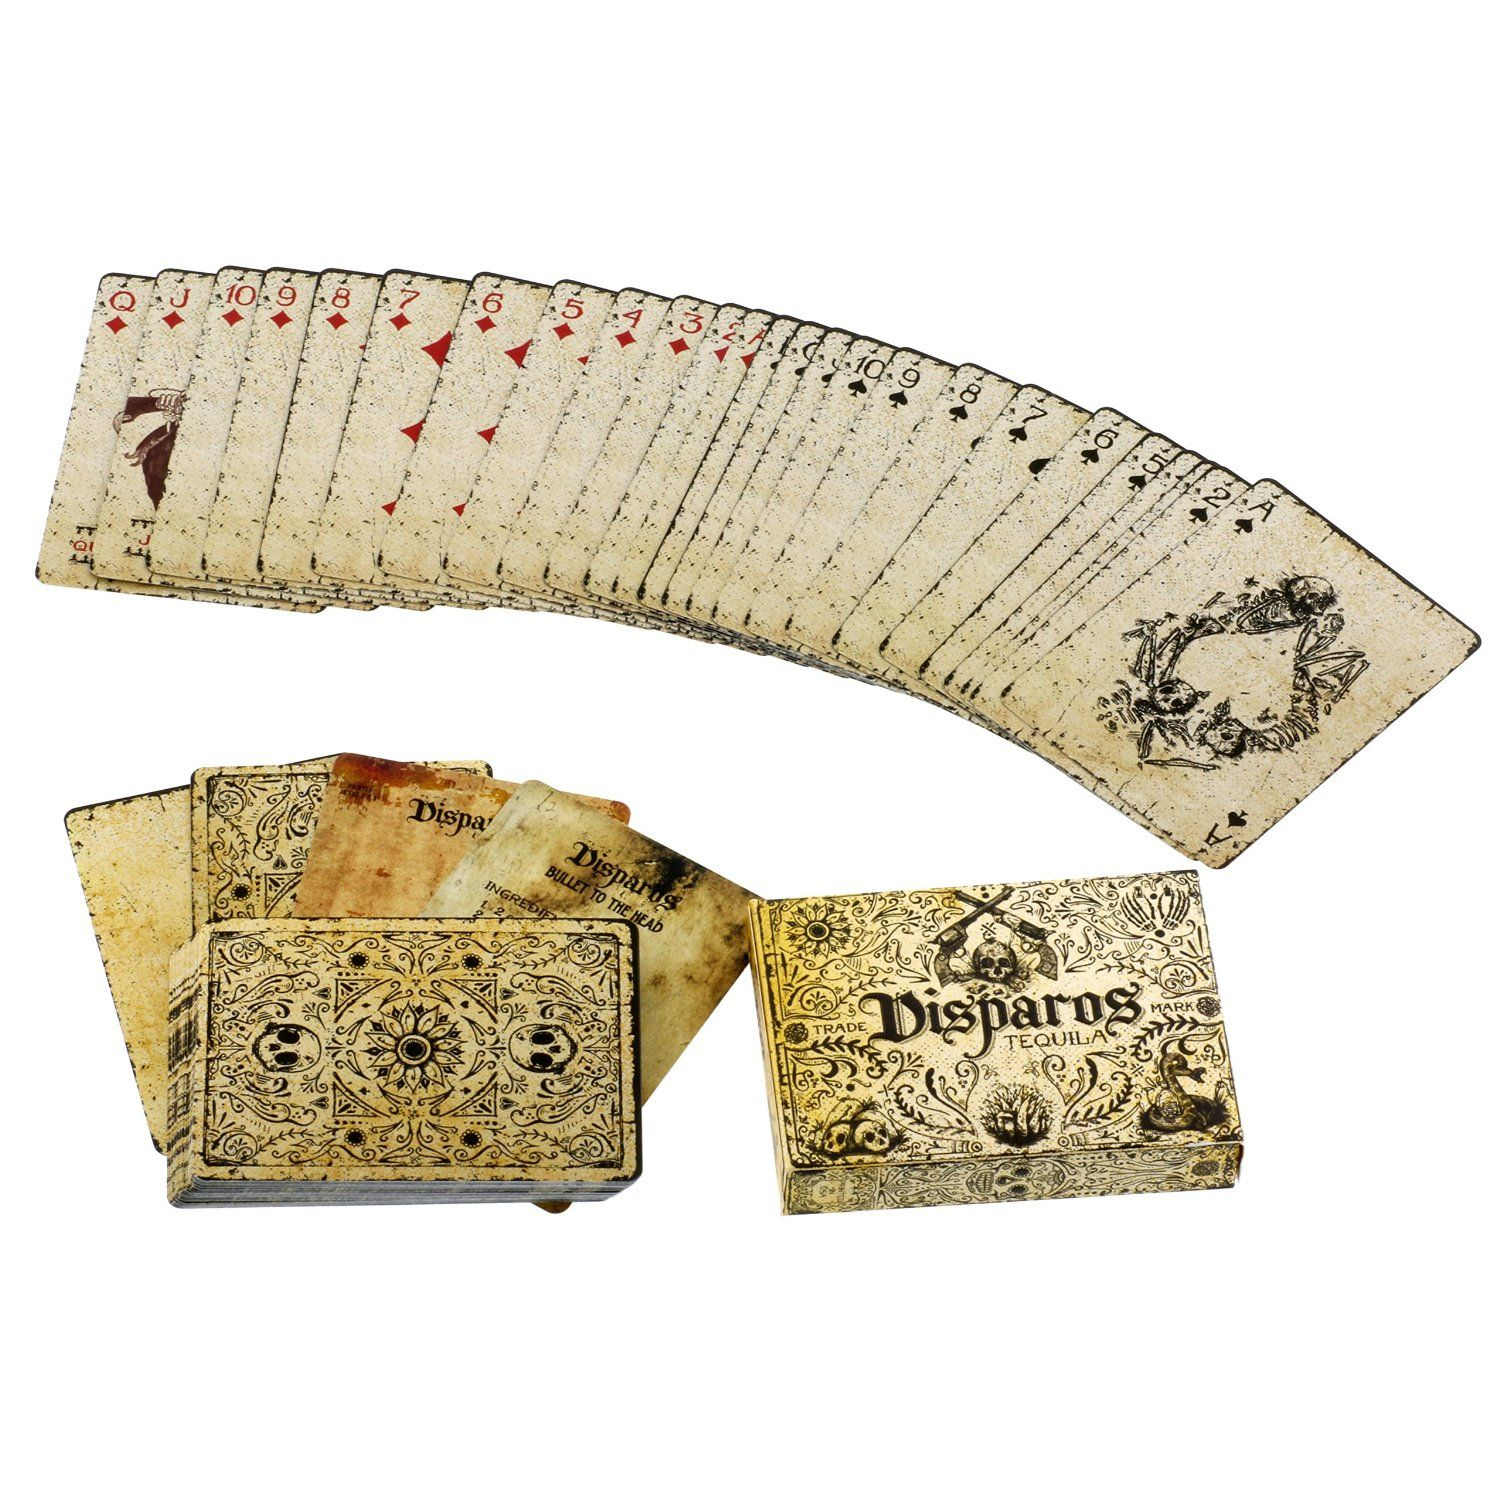 Amazon.com: Prohibition Limited Edition Playing Cards Box - Set of 6 Ellusionist Decks: Sports & Outdoors